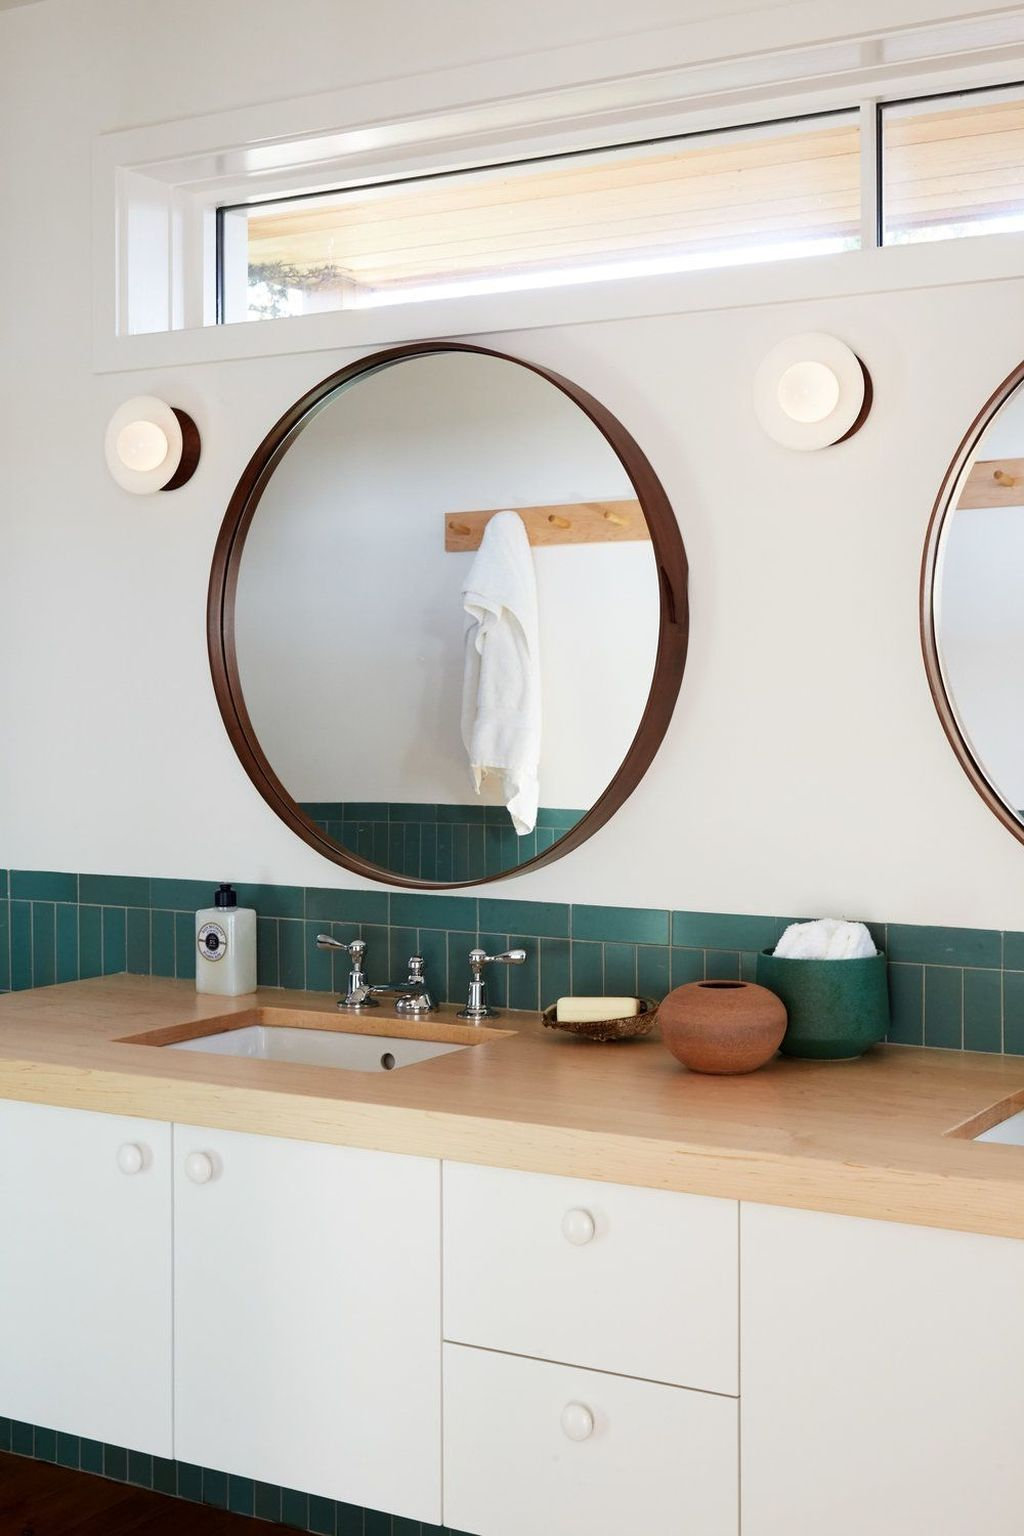 21 inspiration bathroom mirror ideas with perfect design amazing rh pinterest com